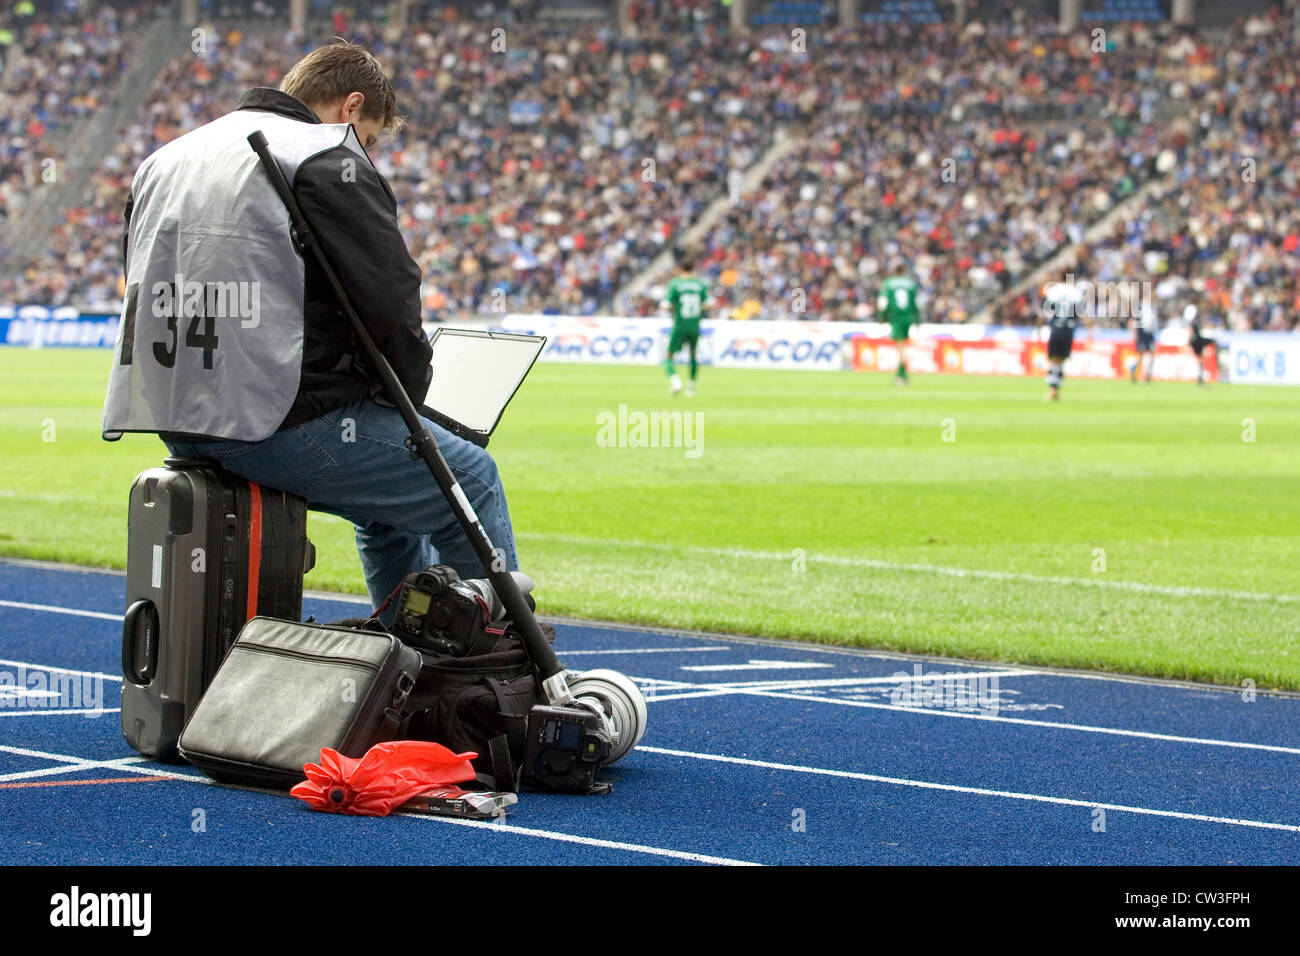 Berlin, a sports journalist at a football match on the sidelines - Stock Image